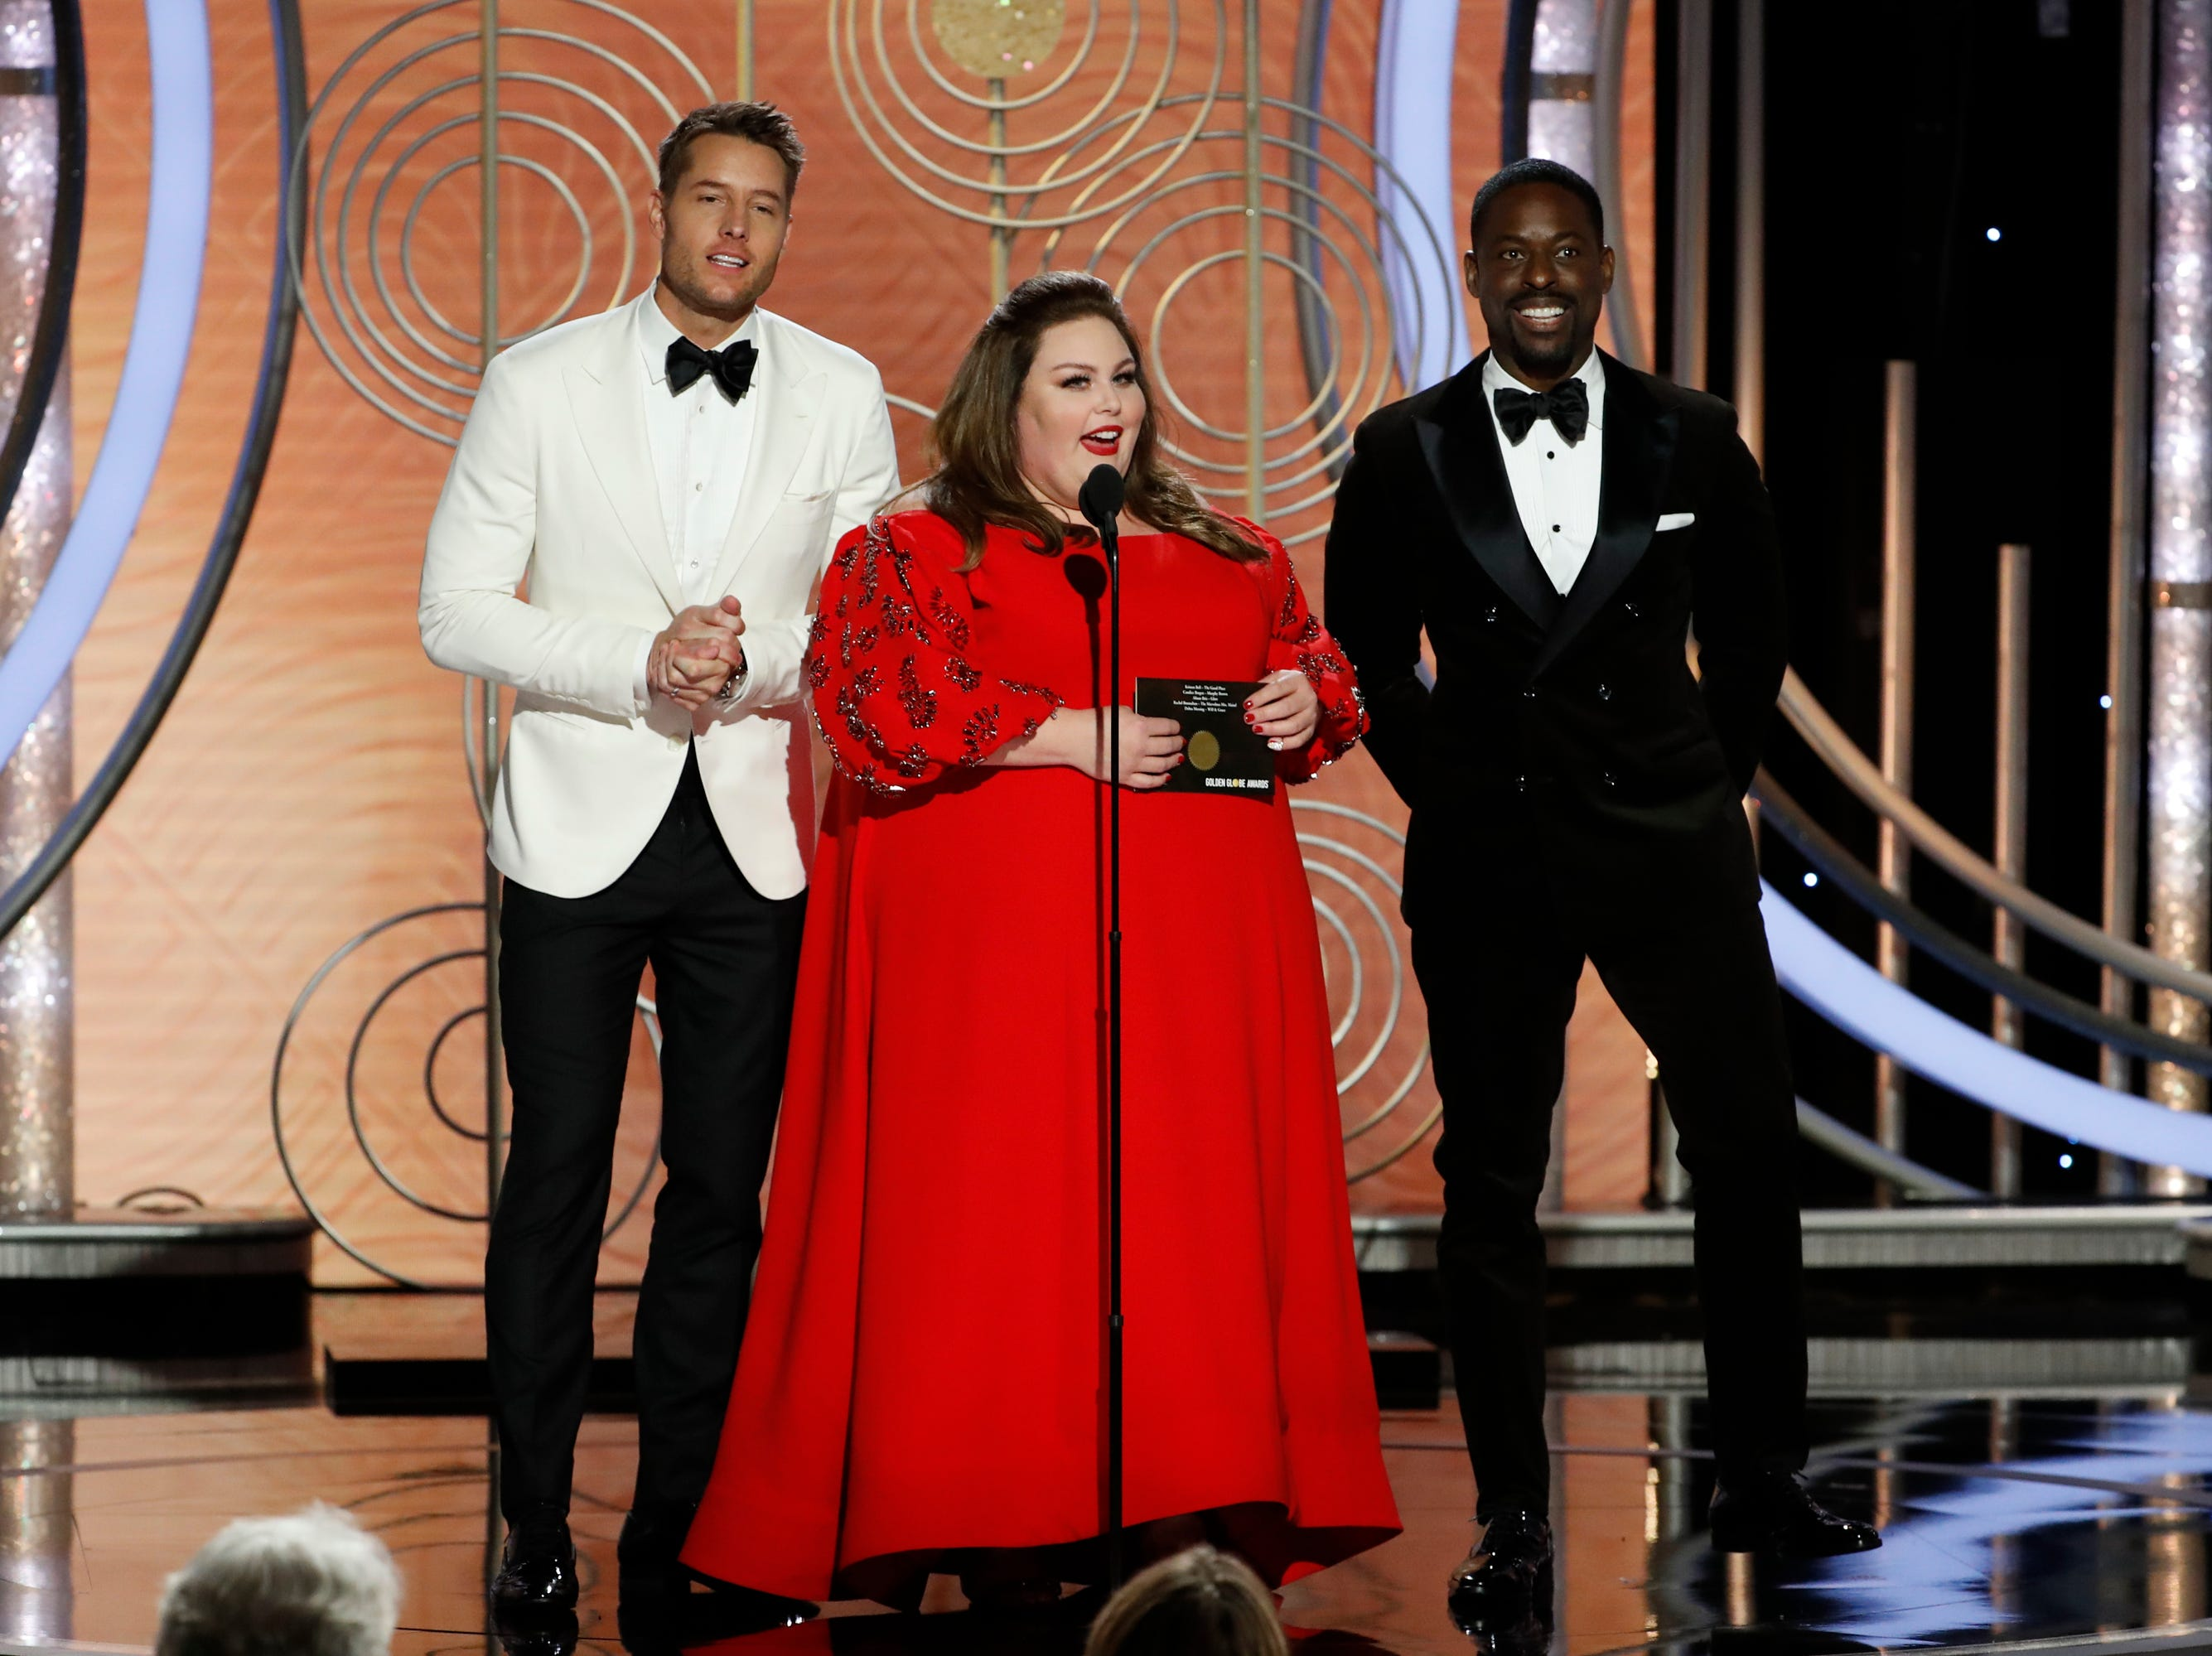 BEVERLY HILLS, CALIFORNIA - JANUARY 06: In this handout photo provided by NBCUniversal, pRESENTERS Justin Hartley, Chrissy Metz and Sterling K. Brown speak onstage during the 76th Annual Golden Globe Awards at The Beverly Hilton Hotel on January 06, 2019 in Beverly Hills, California.  (Photo by Paul Drinkwater/NBCUniversal via Getty Images) ORG XMIT: 775268380 ORIG FILE ID: 1078415012